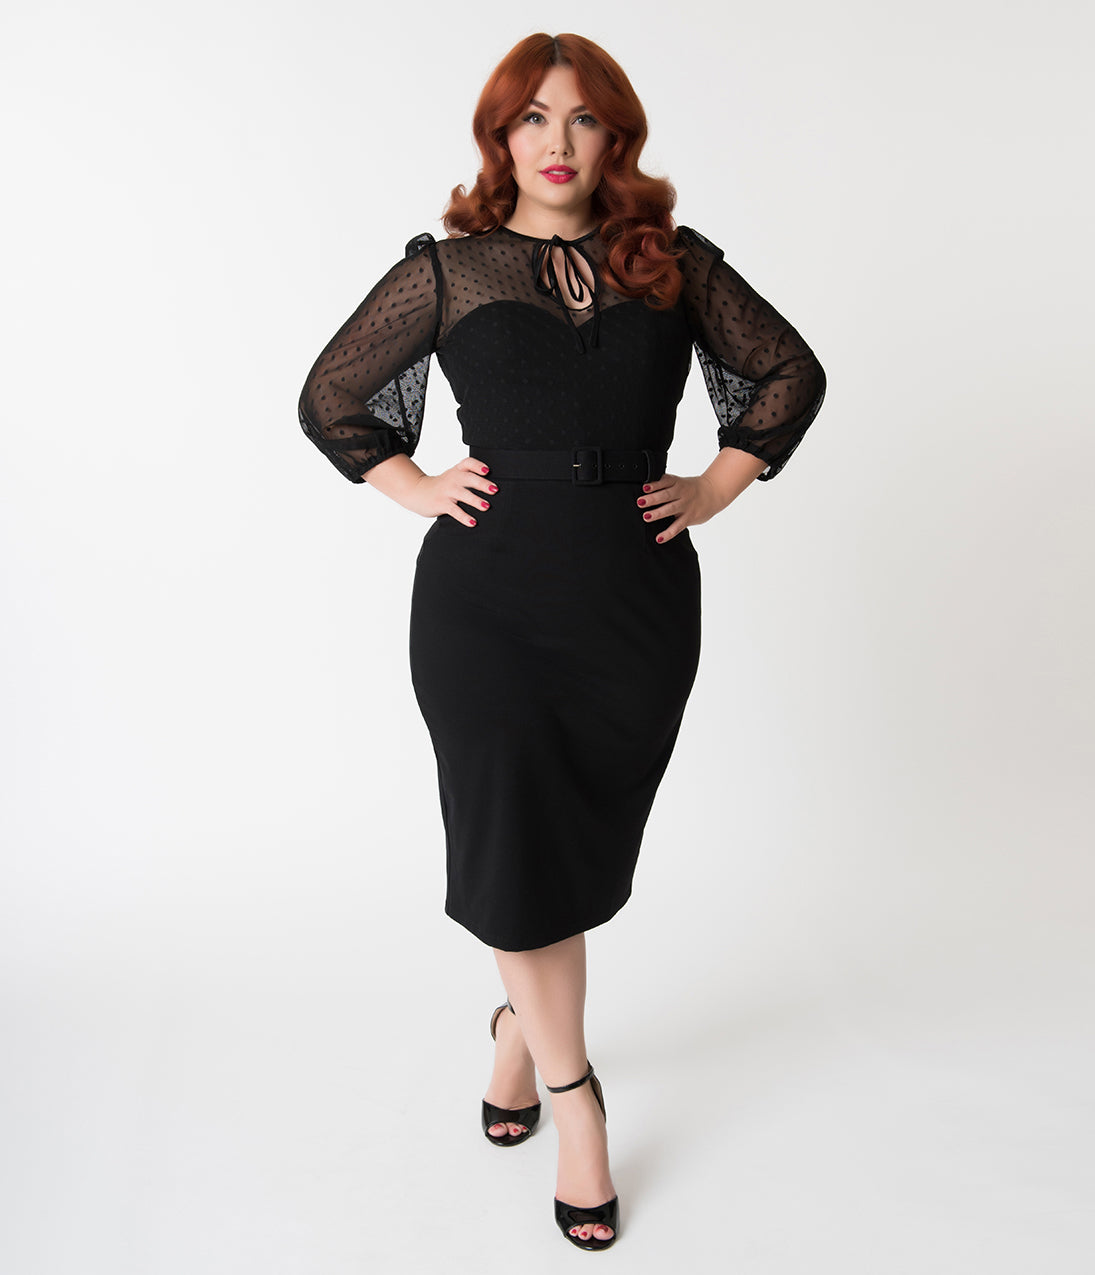 1940s Evening, Prom, Party, Cocktail Dresses & Ball Gowns Vixen By Micheline Pitt Plus Size Black Polka Dot Frenchie Wiggle Dress $142.00 AT vintagedancer.com